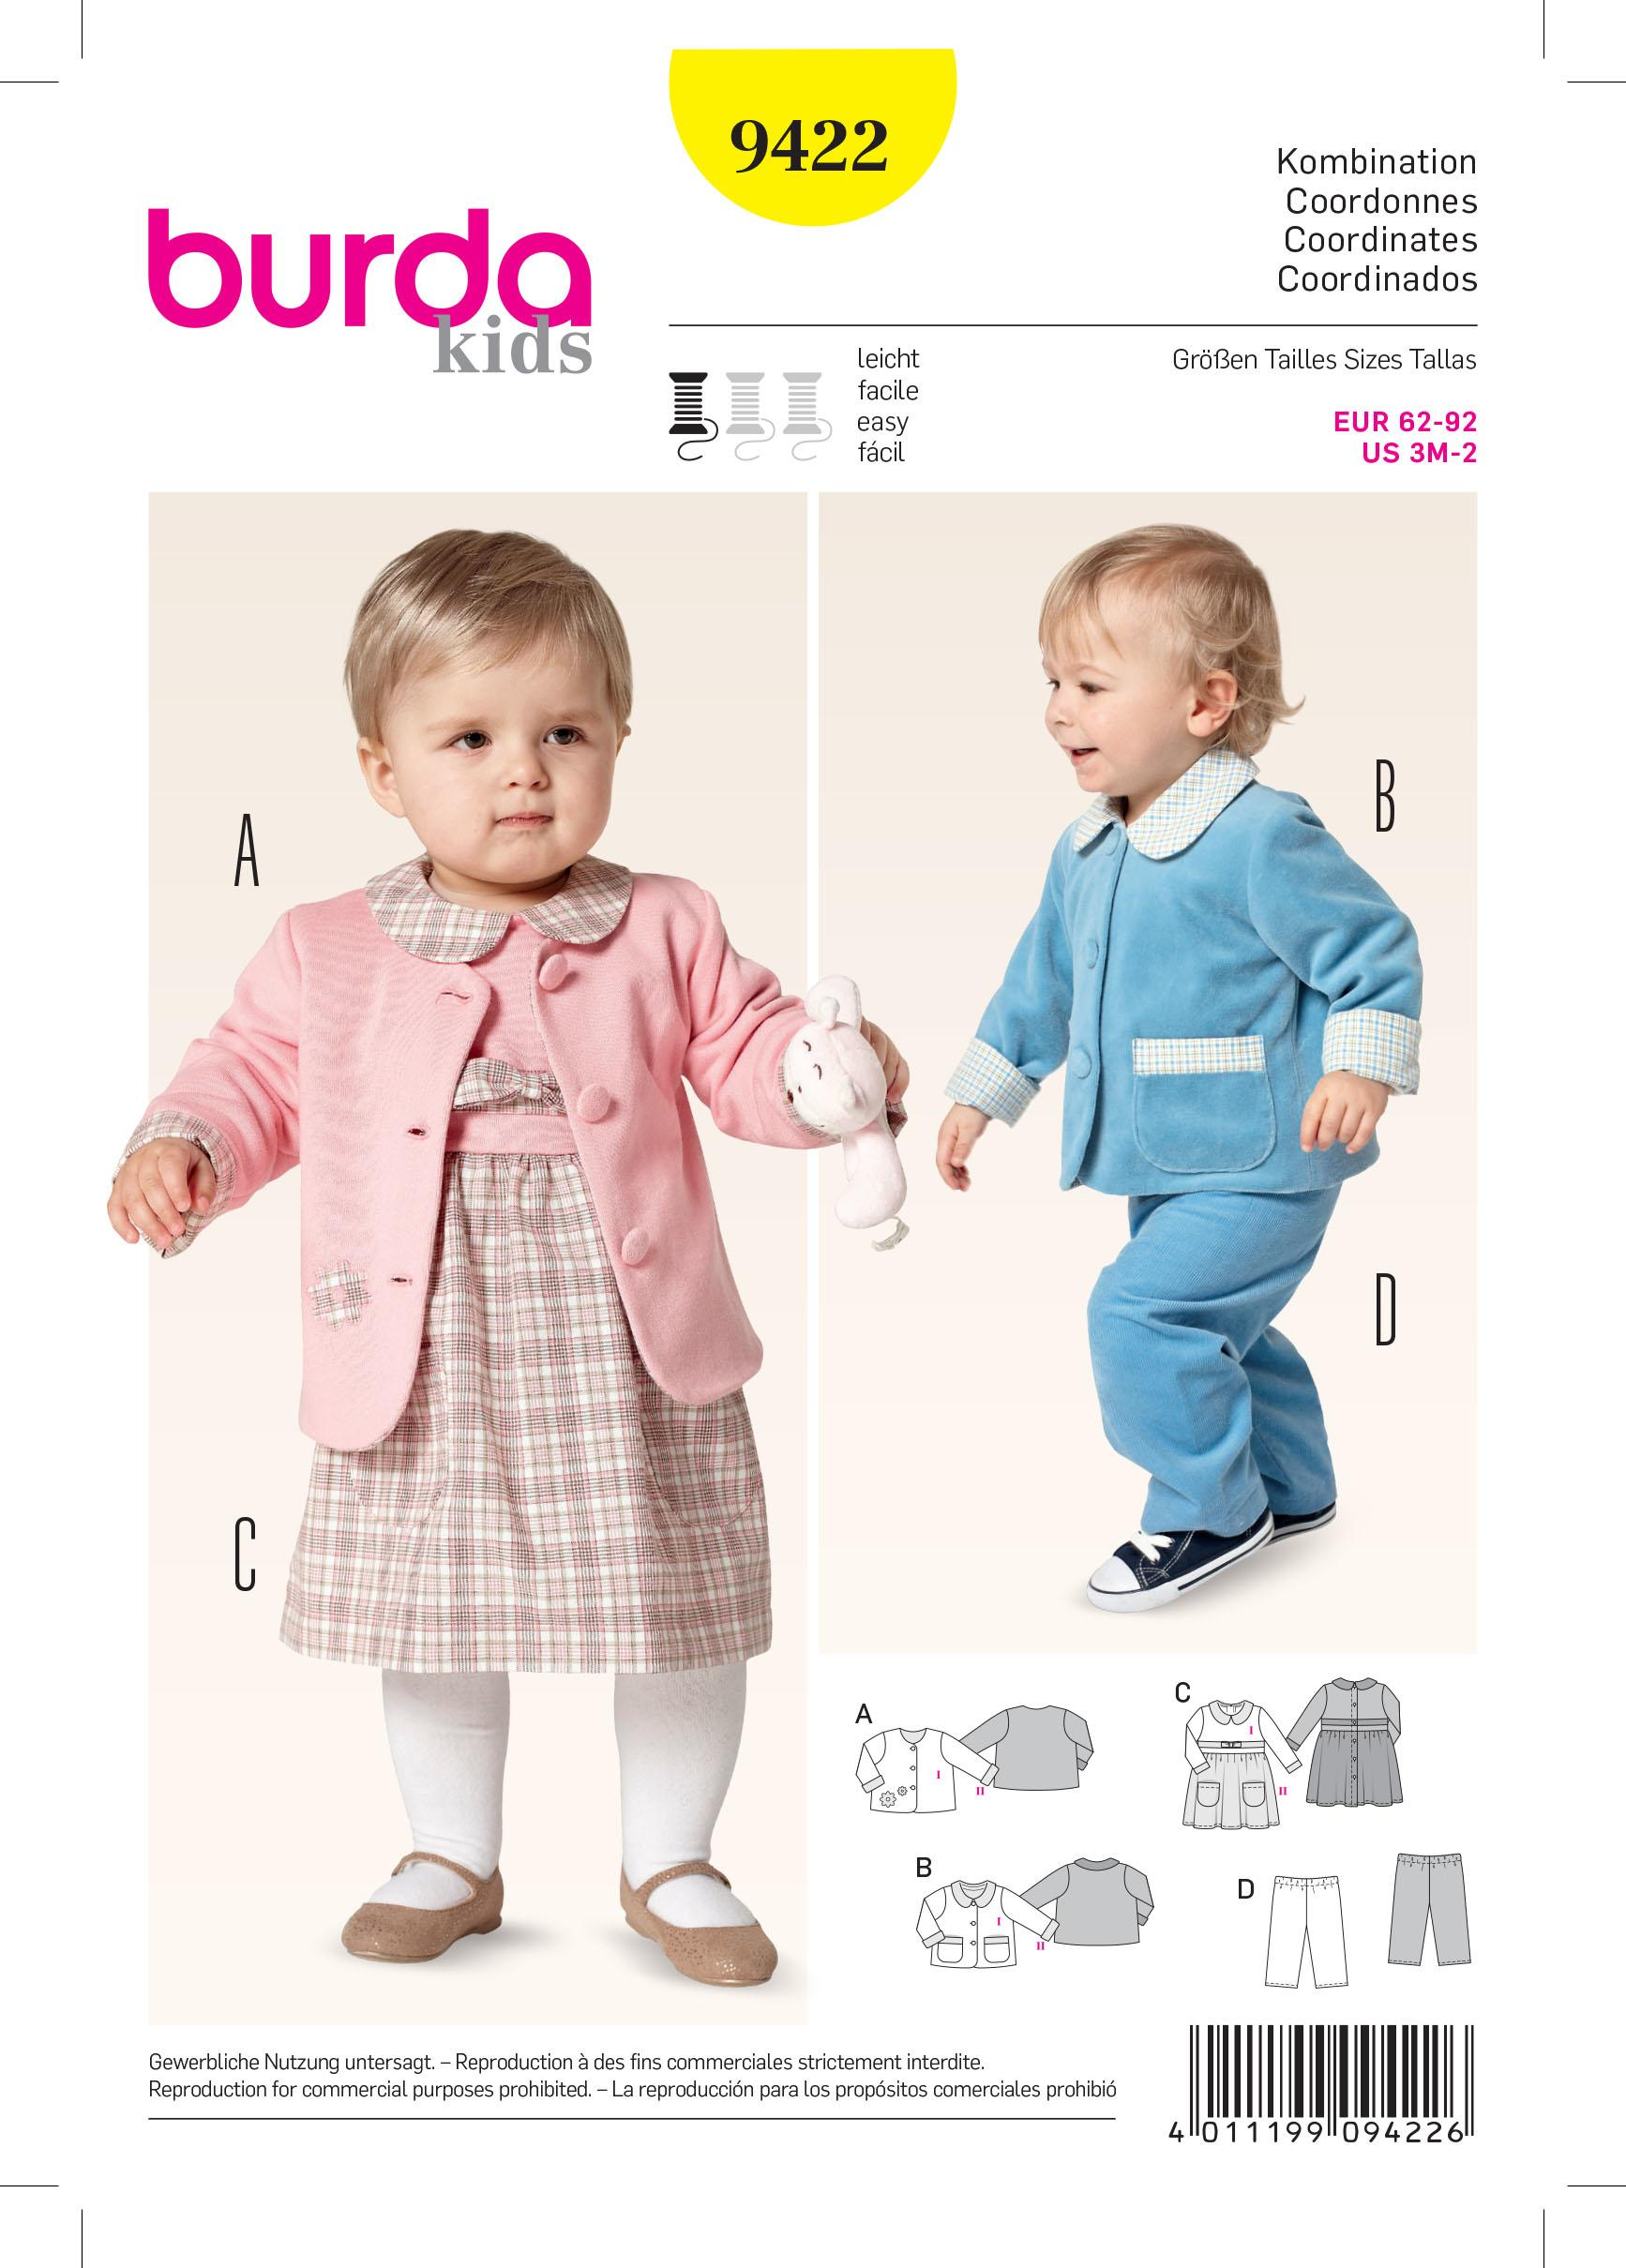 Burda B9422 Baby Sewing Pattern